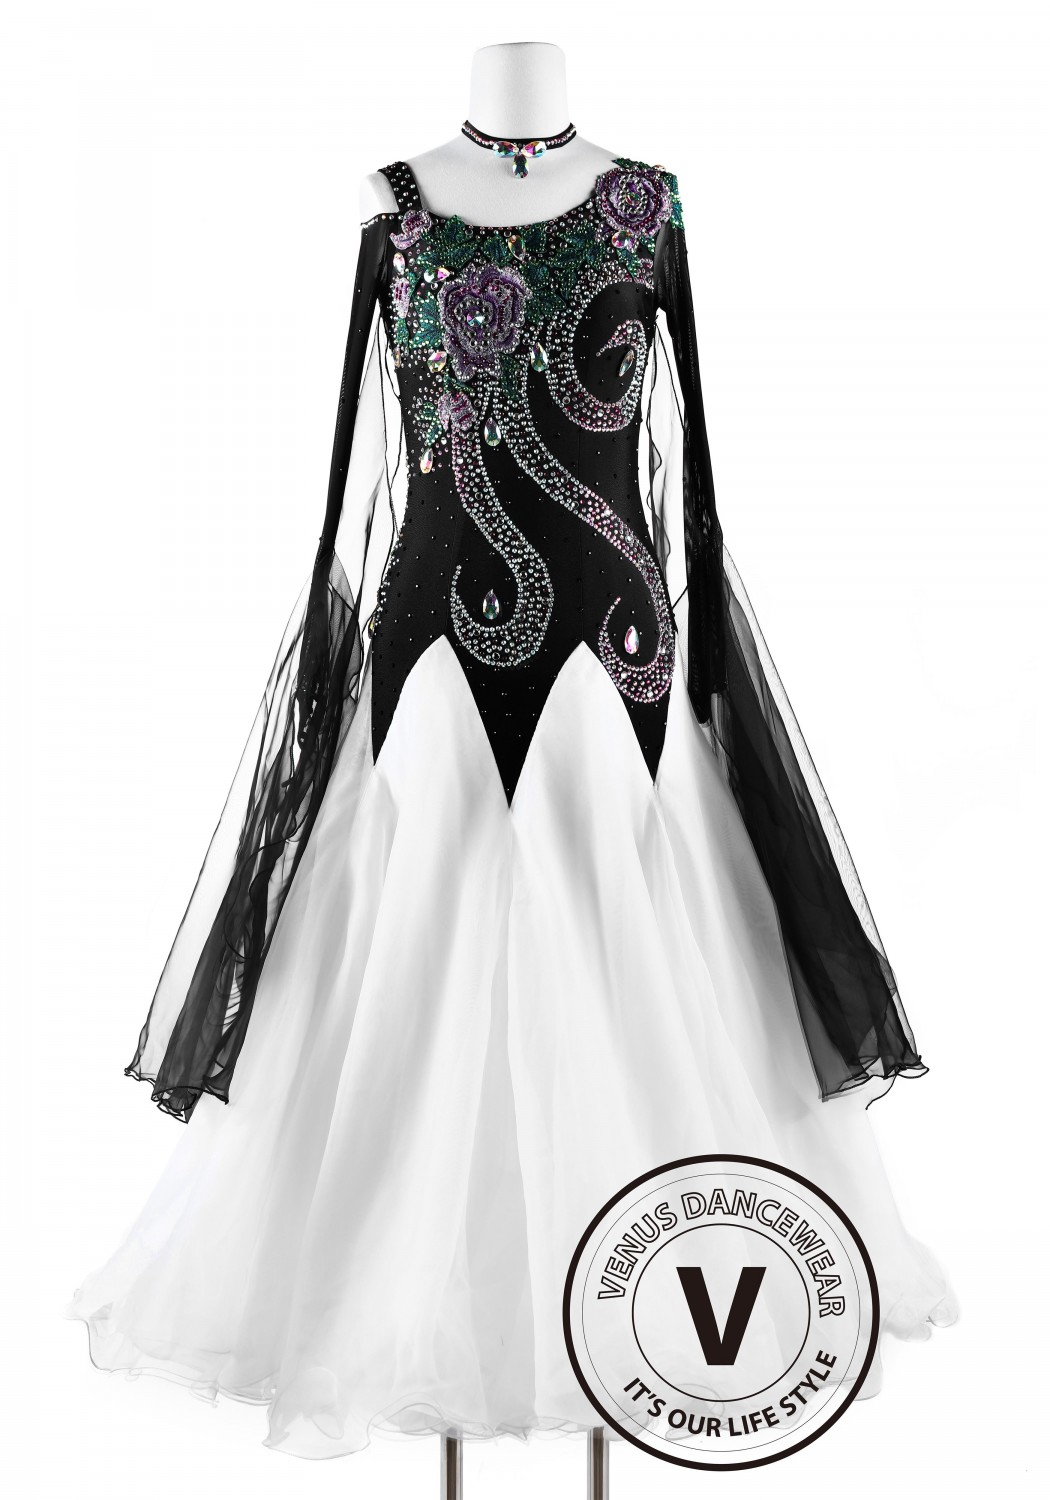 White and Black Phoenix Smooth Waltz Tango Quickstep Ballroom Competition Dance Dress